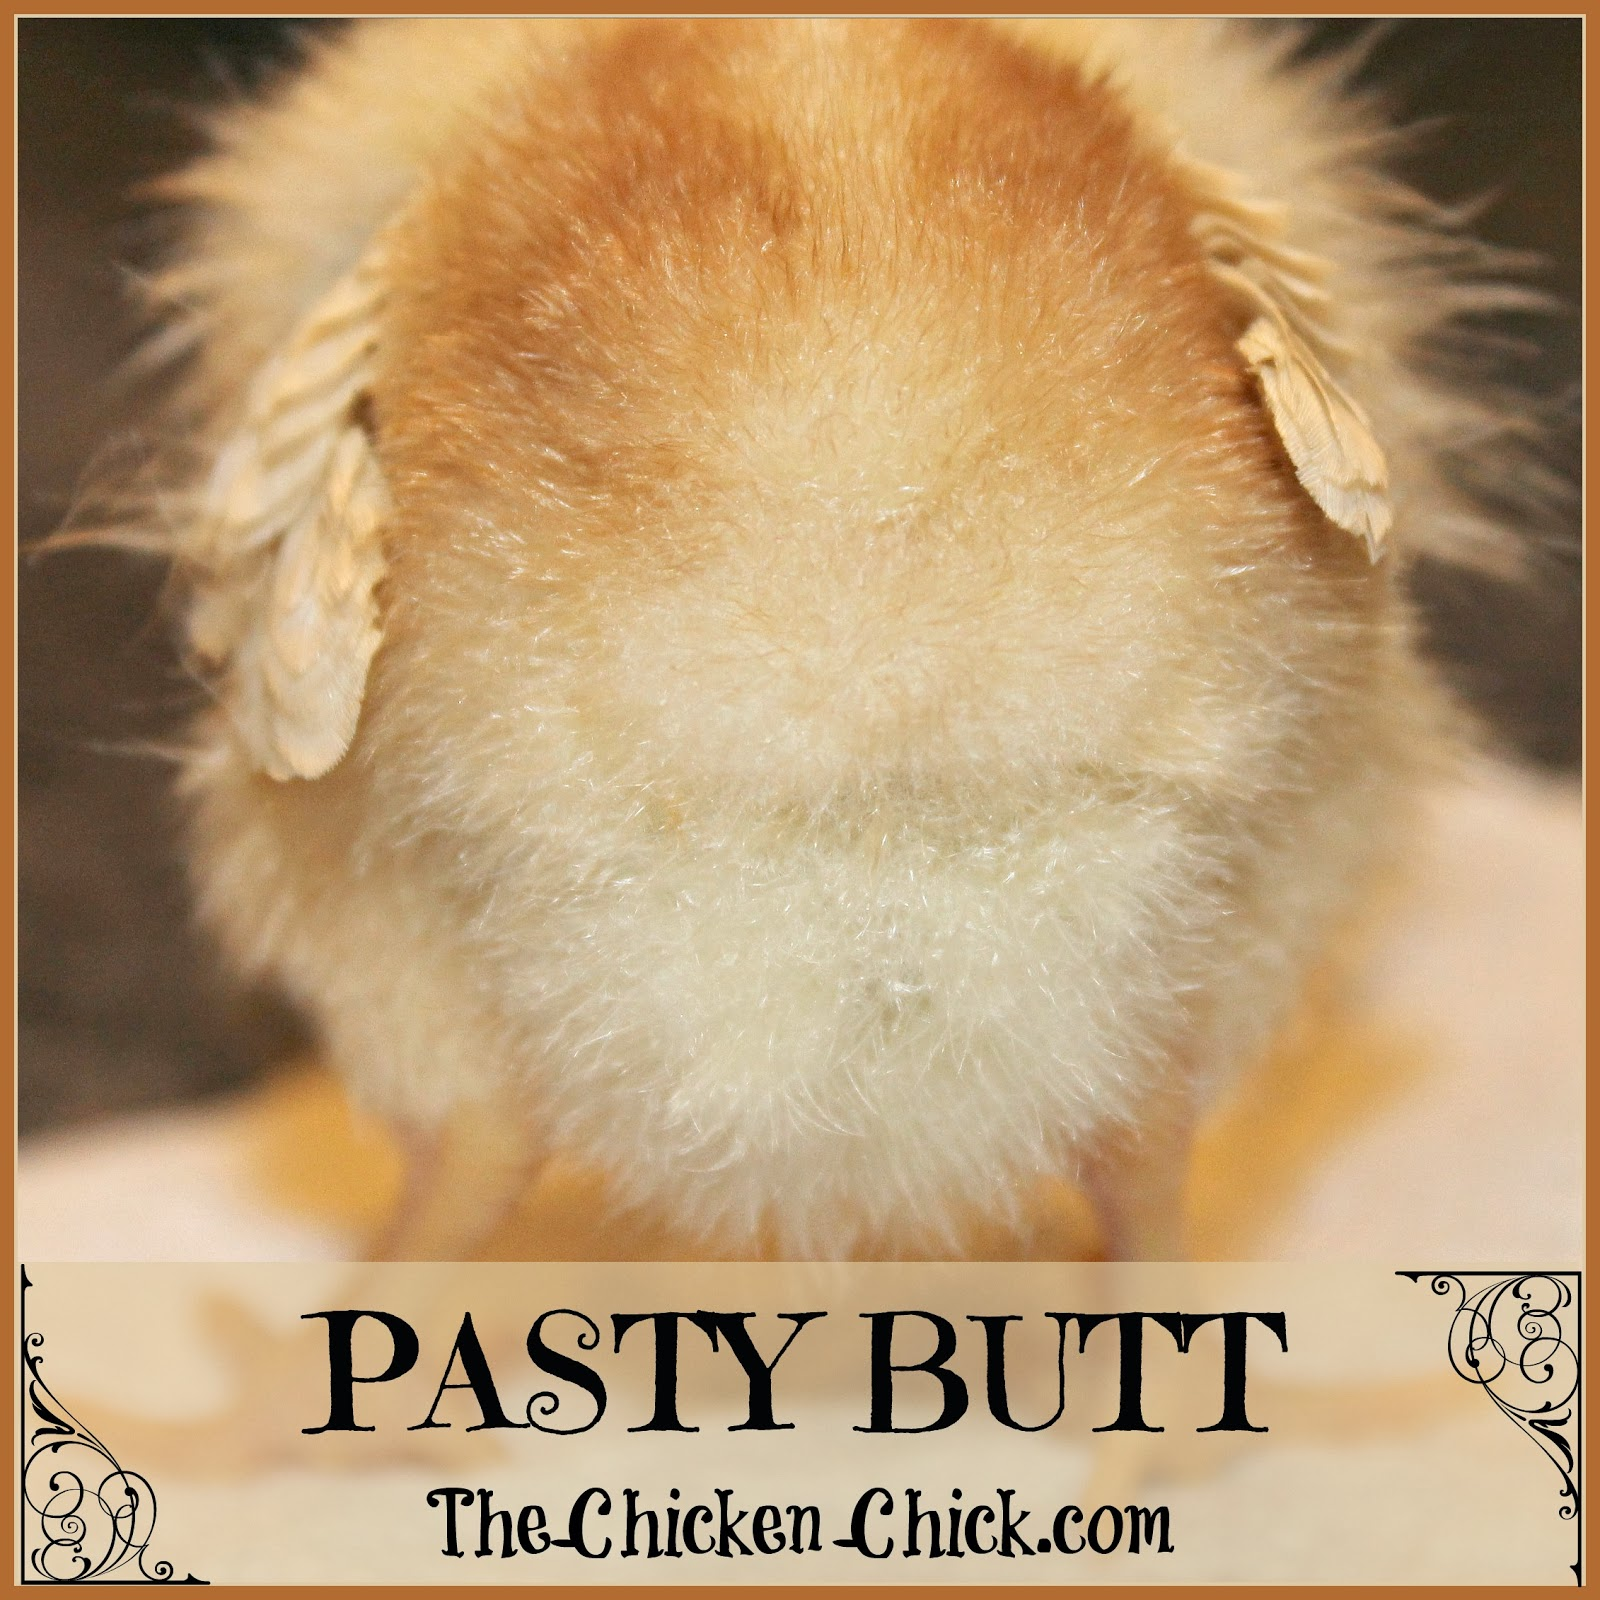 Pasty Butt also known as pasted vent and pasting up is a condition that occurs in baby chicks when droppings stick to the down surrounding their vent. Poop builds up to form a blockage of the digestive system that can be fatal to the chick unless removed. Pasty butt treatment, causes and prevention are covered below.